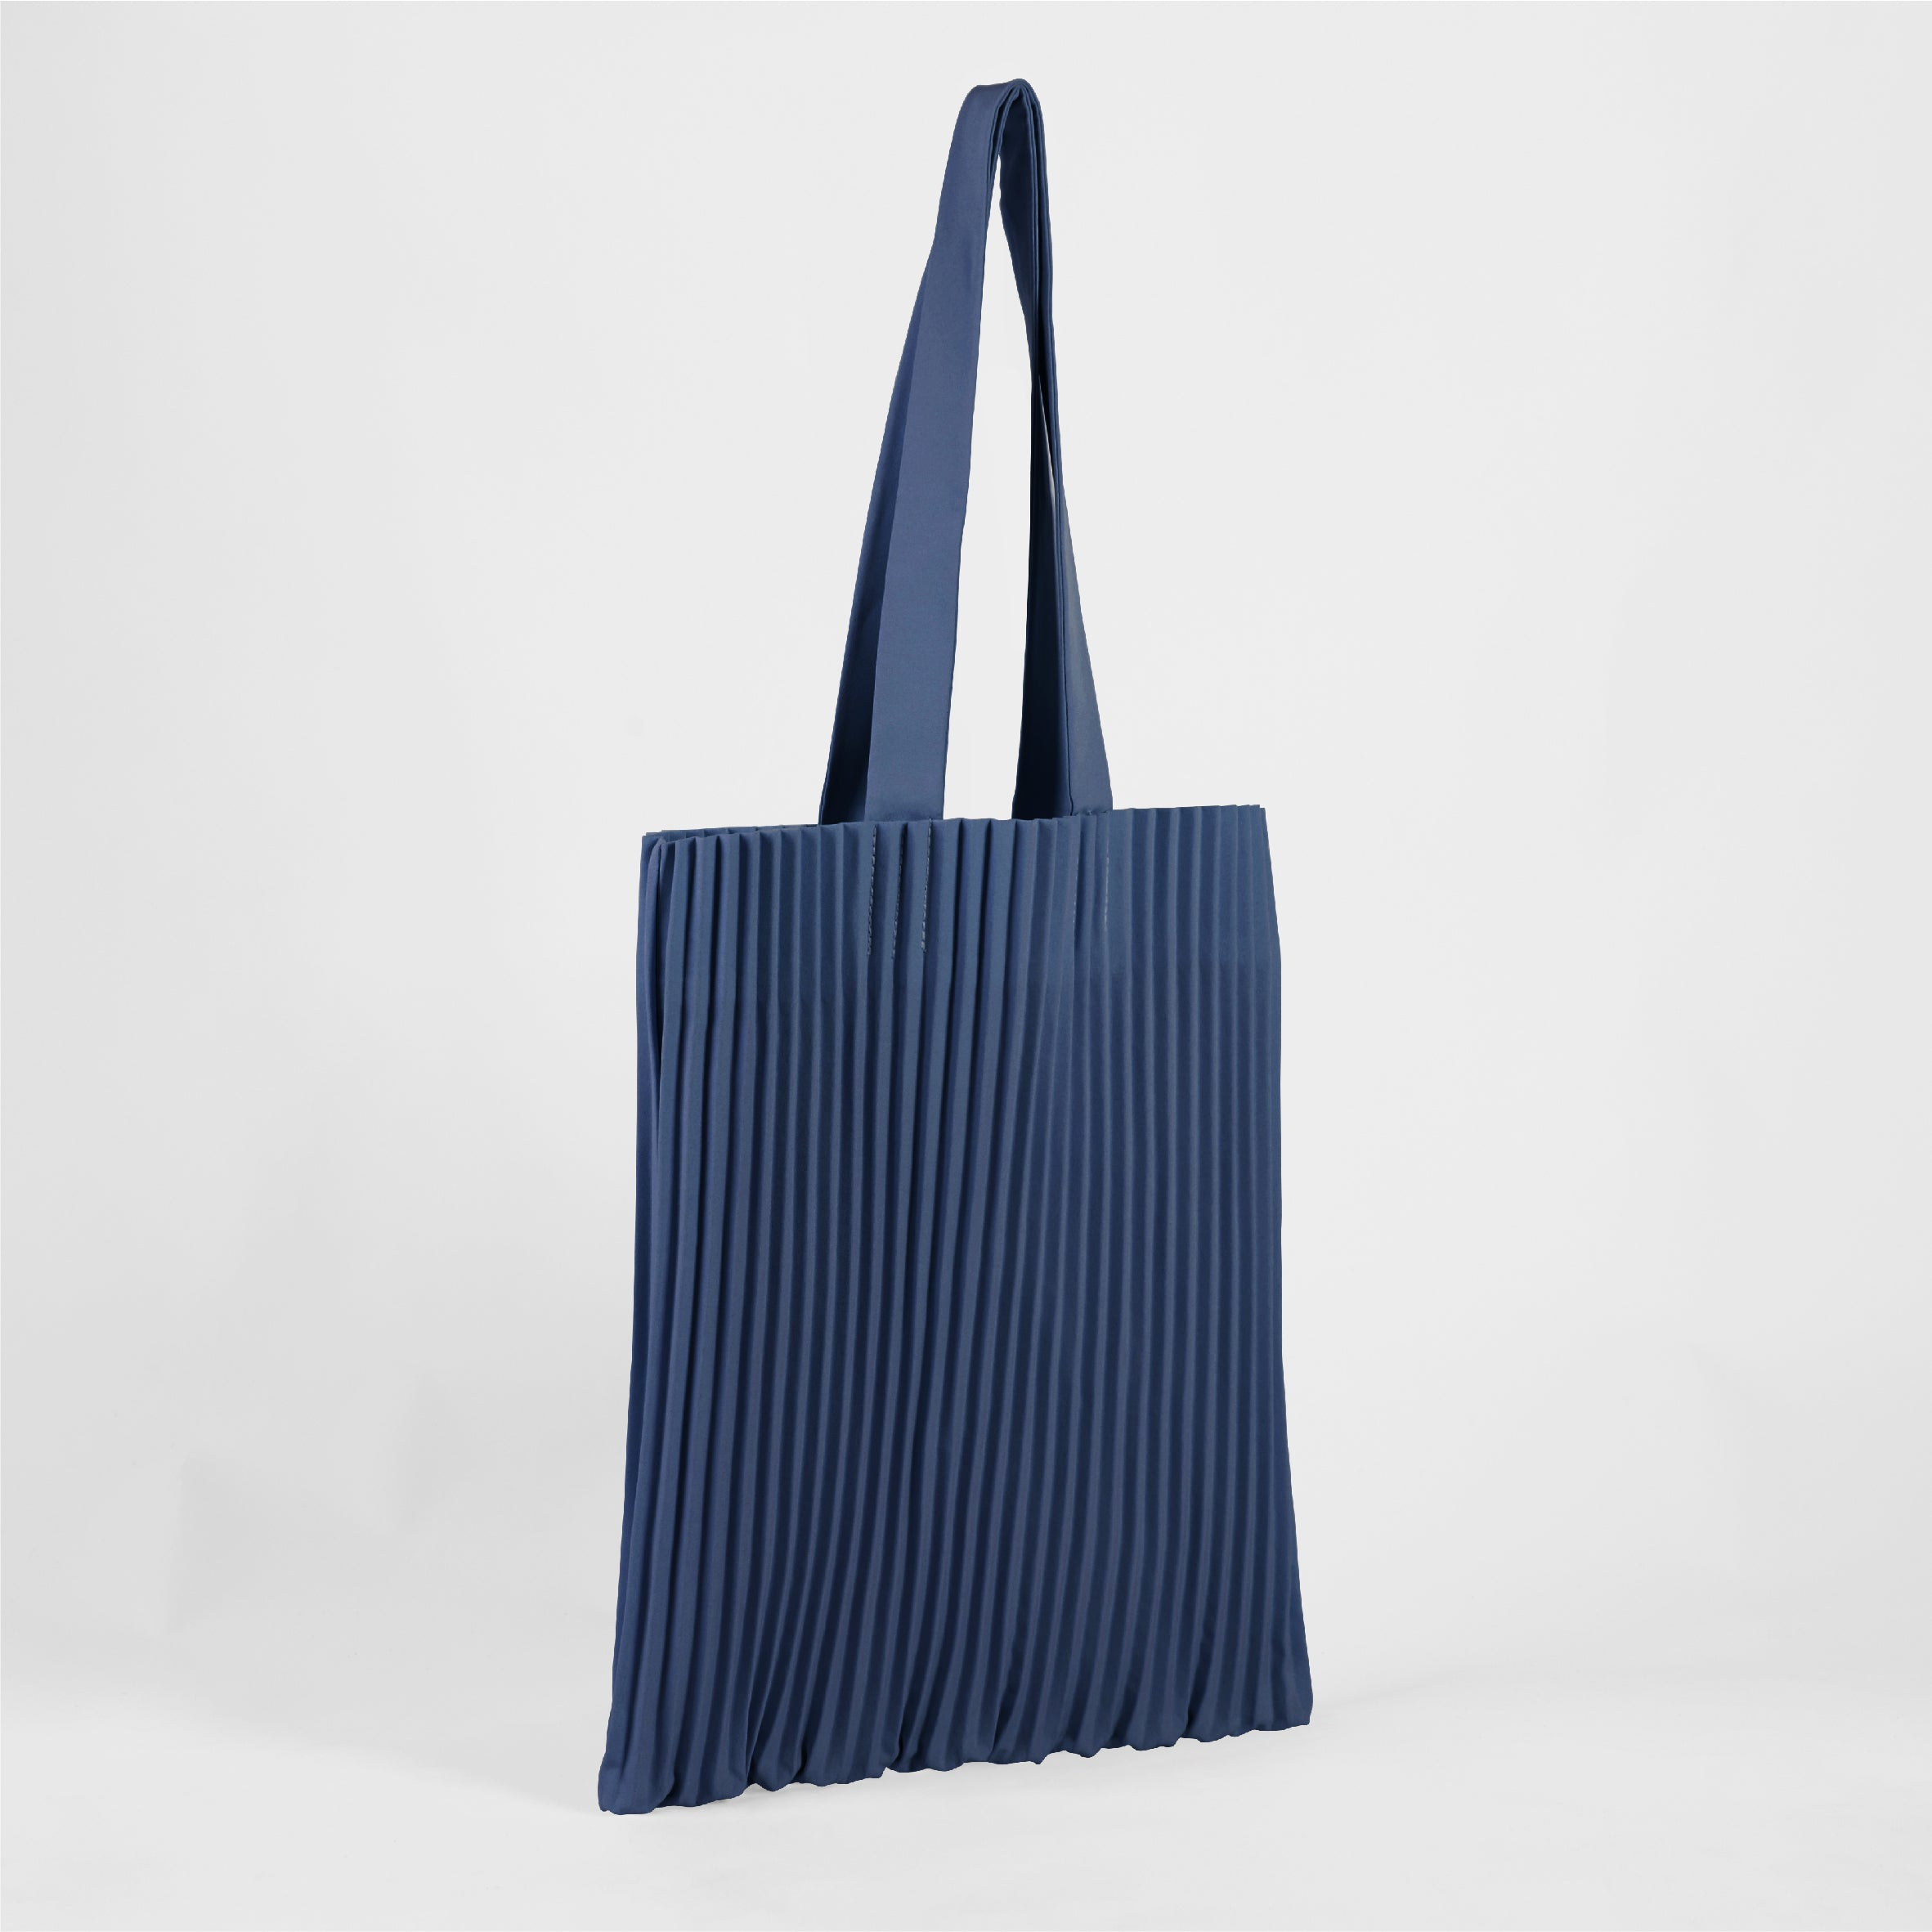 aPulp | Tote bag in Marine Blue